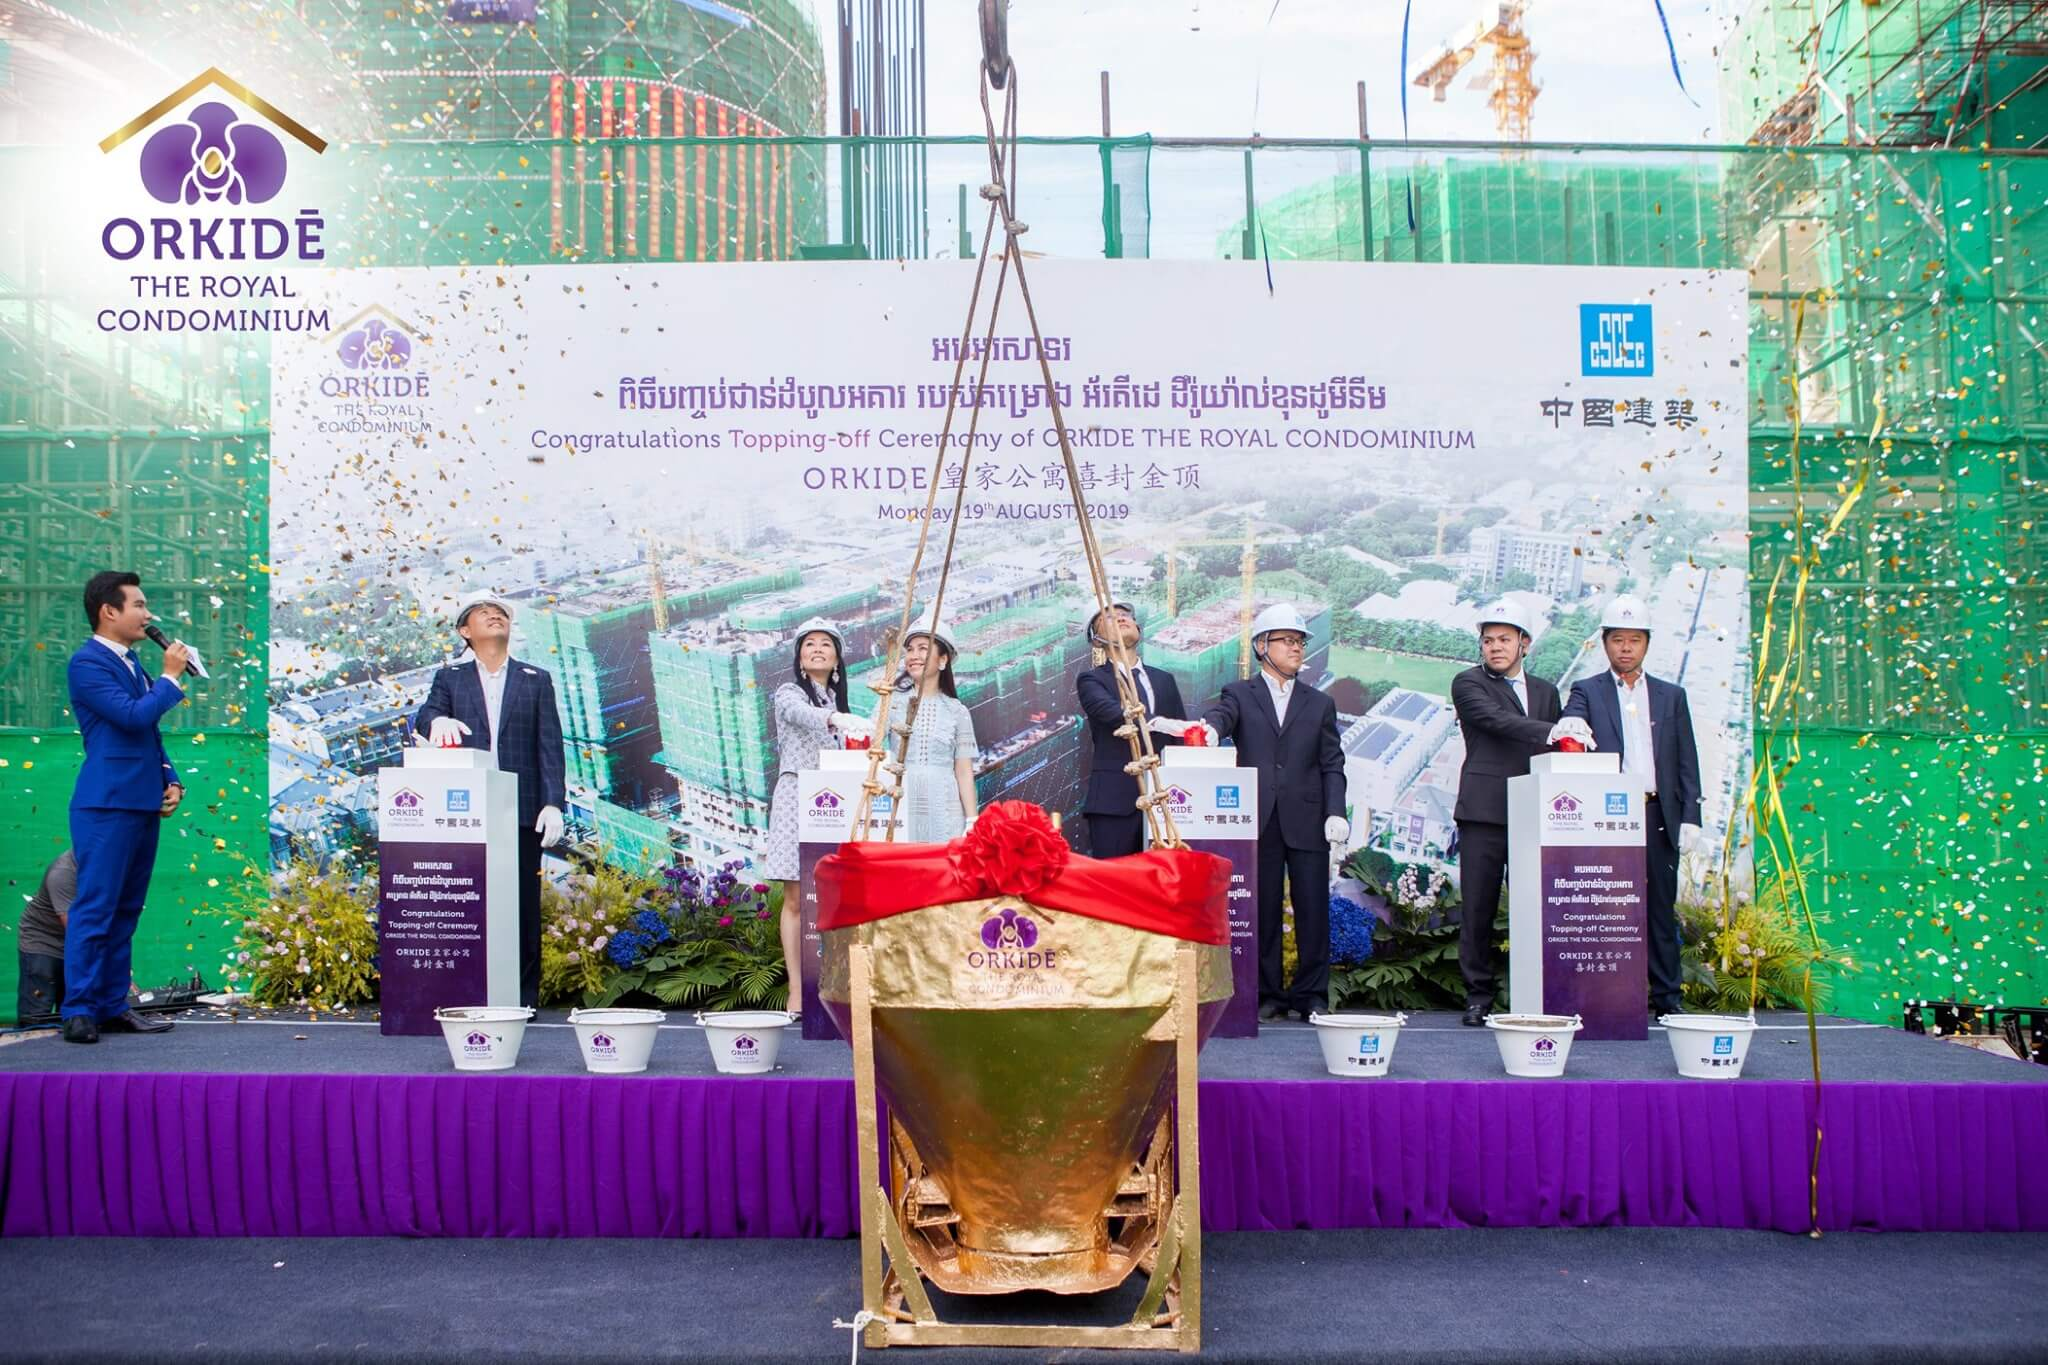 Topping off ceremony held for Orkide The Royal Condominium